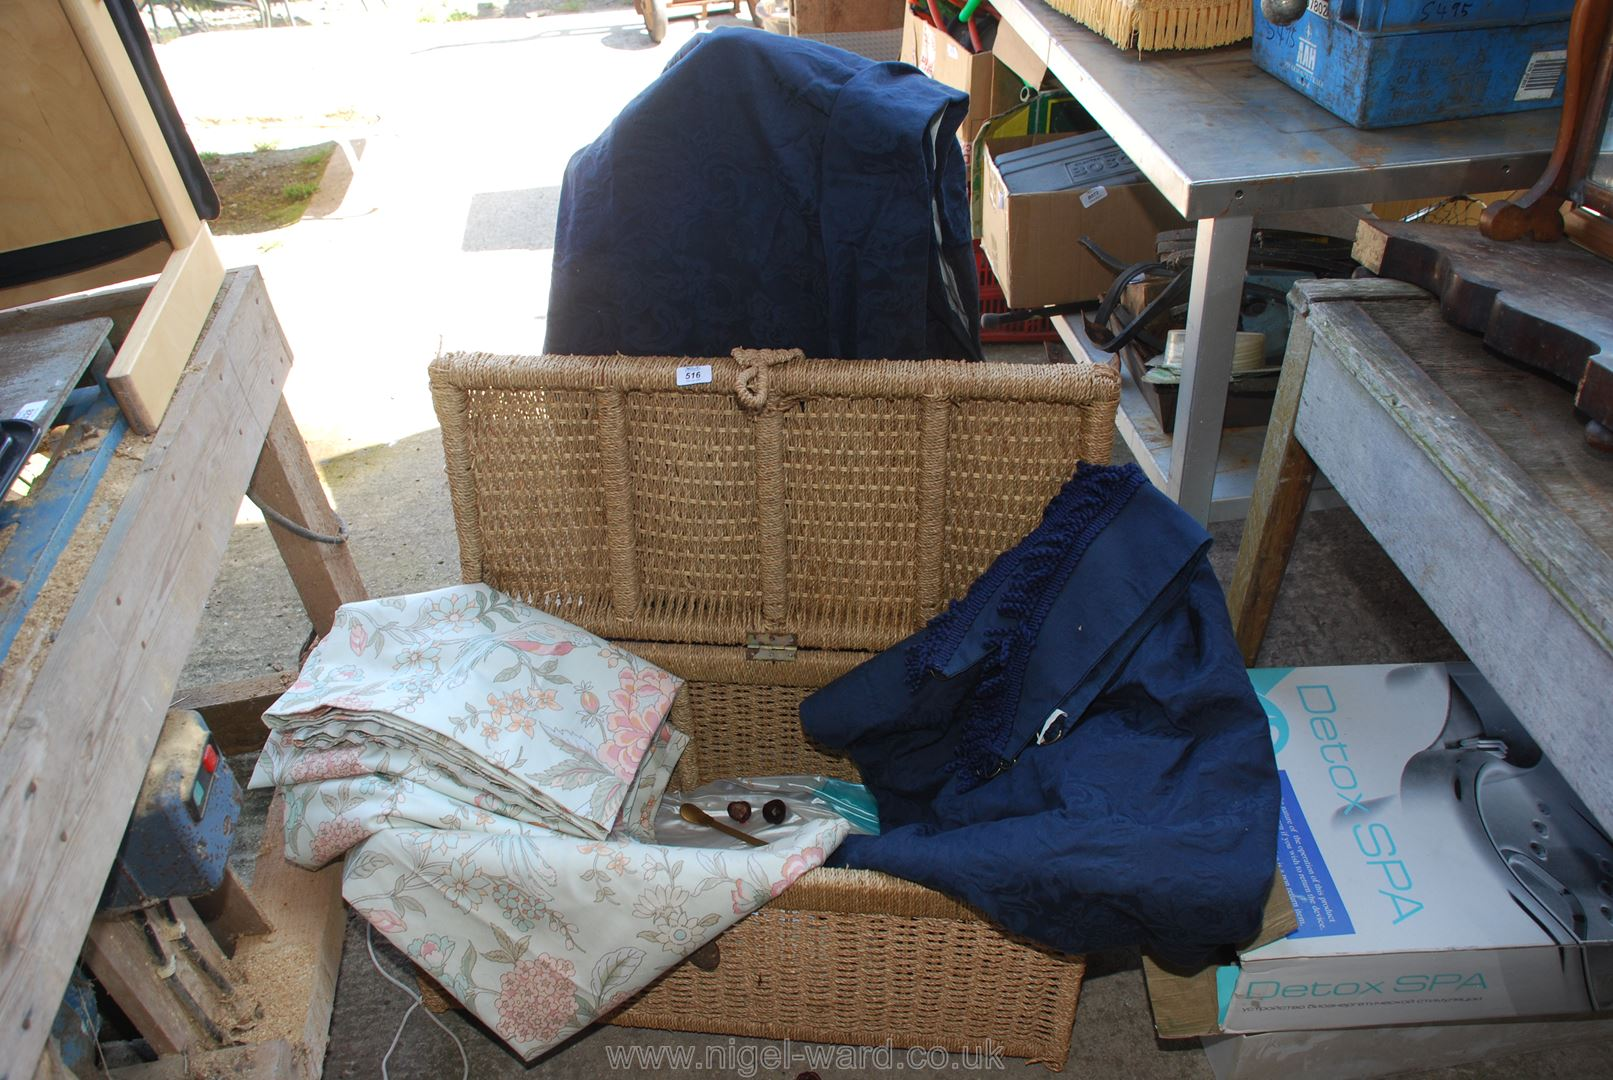 A seagrass blanket chest including;